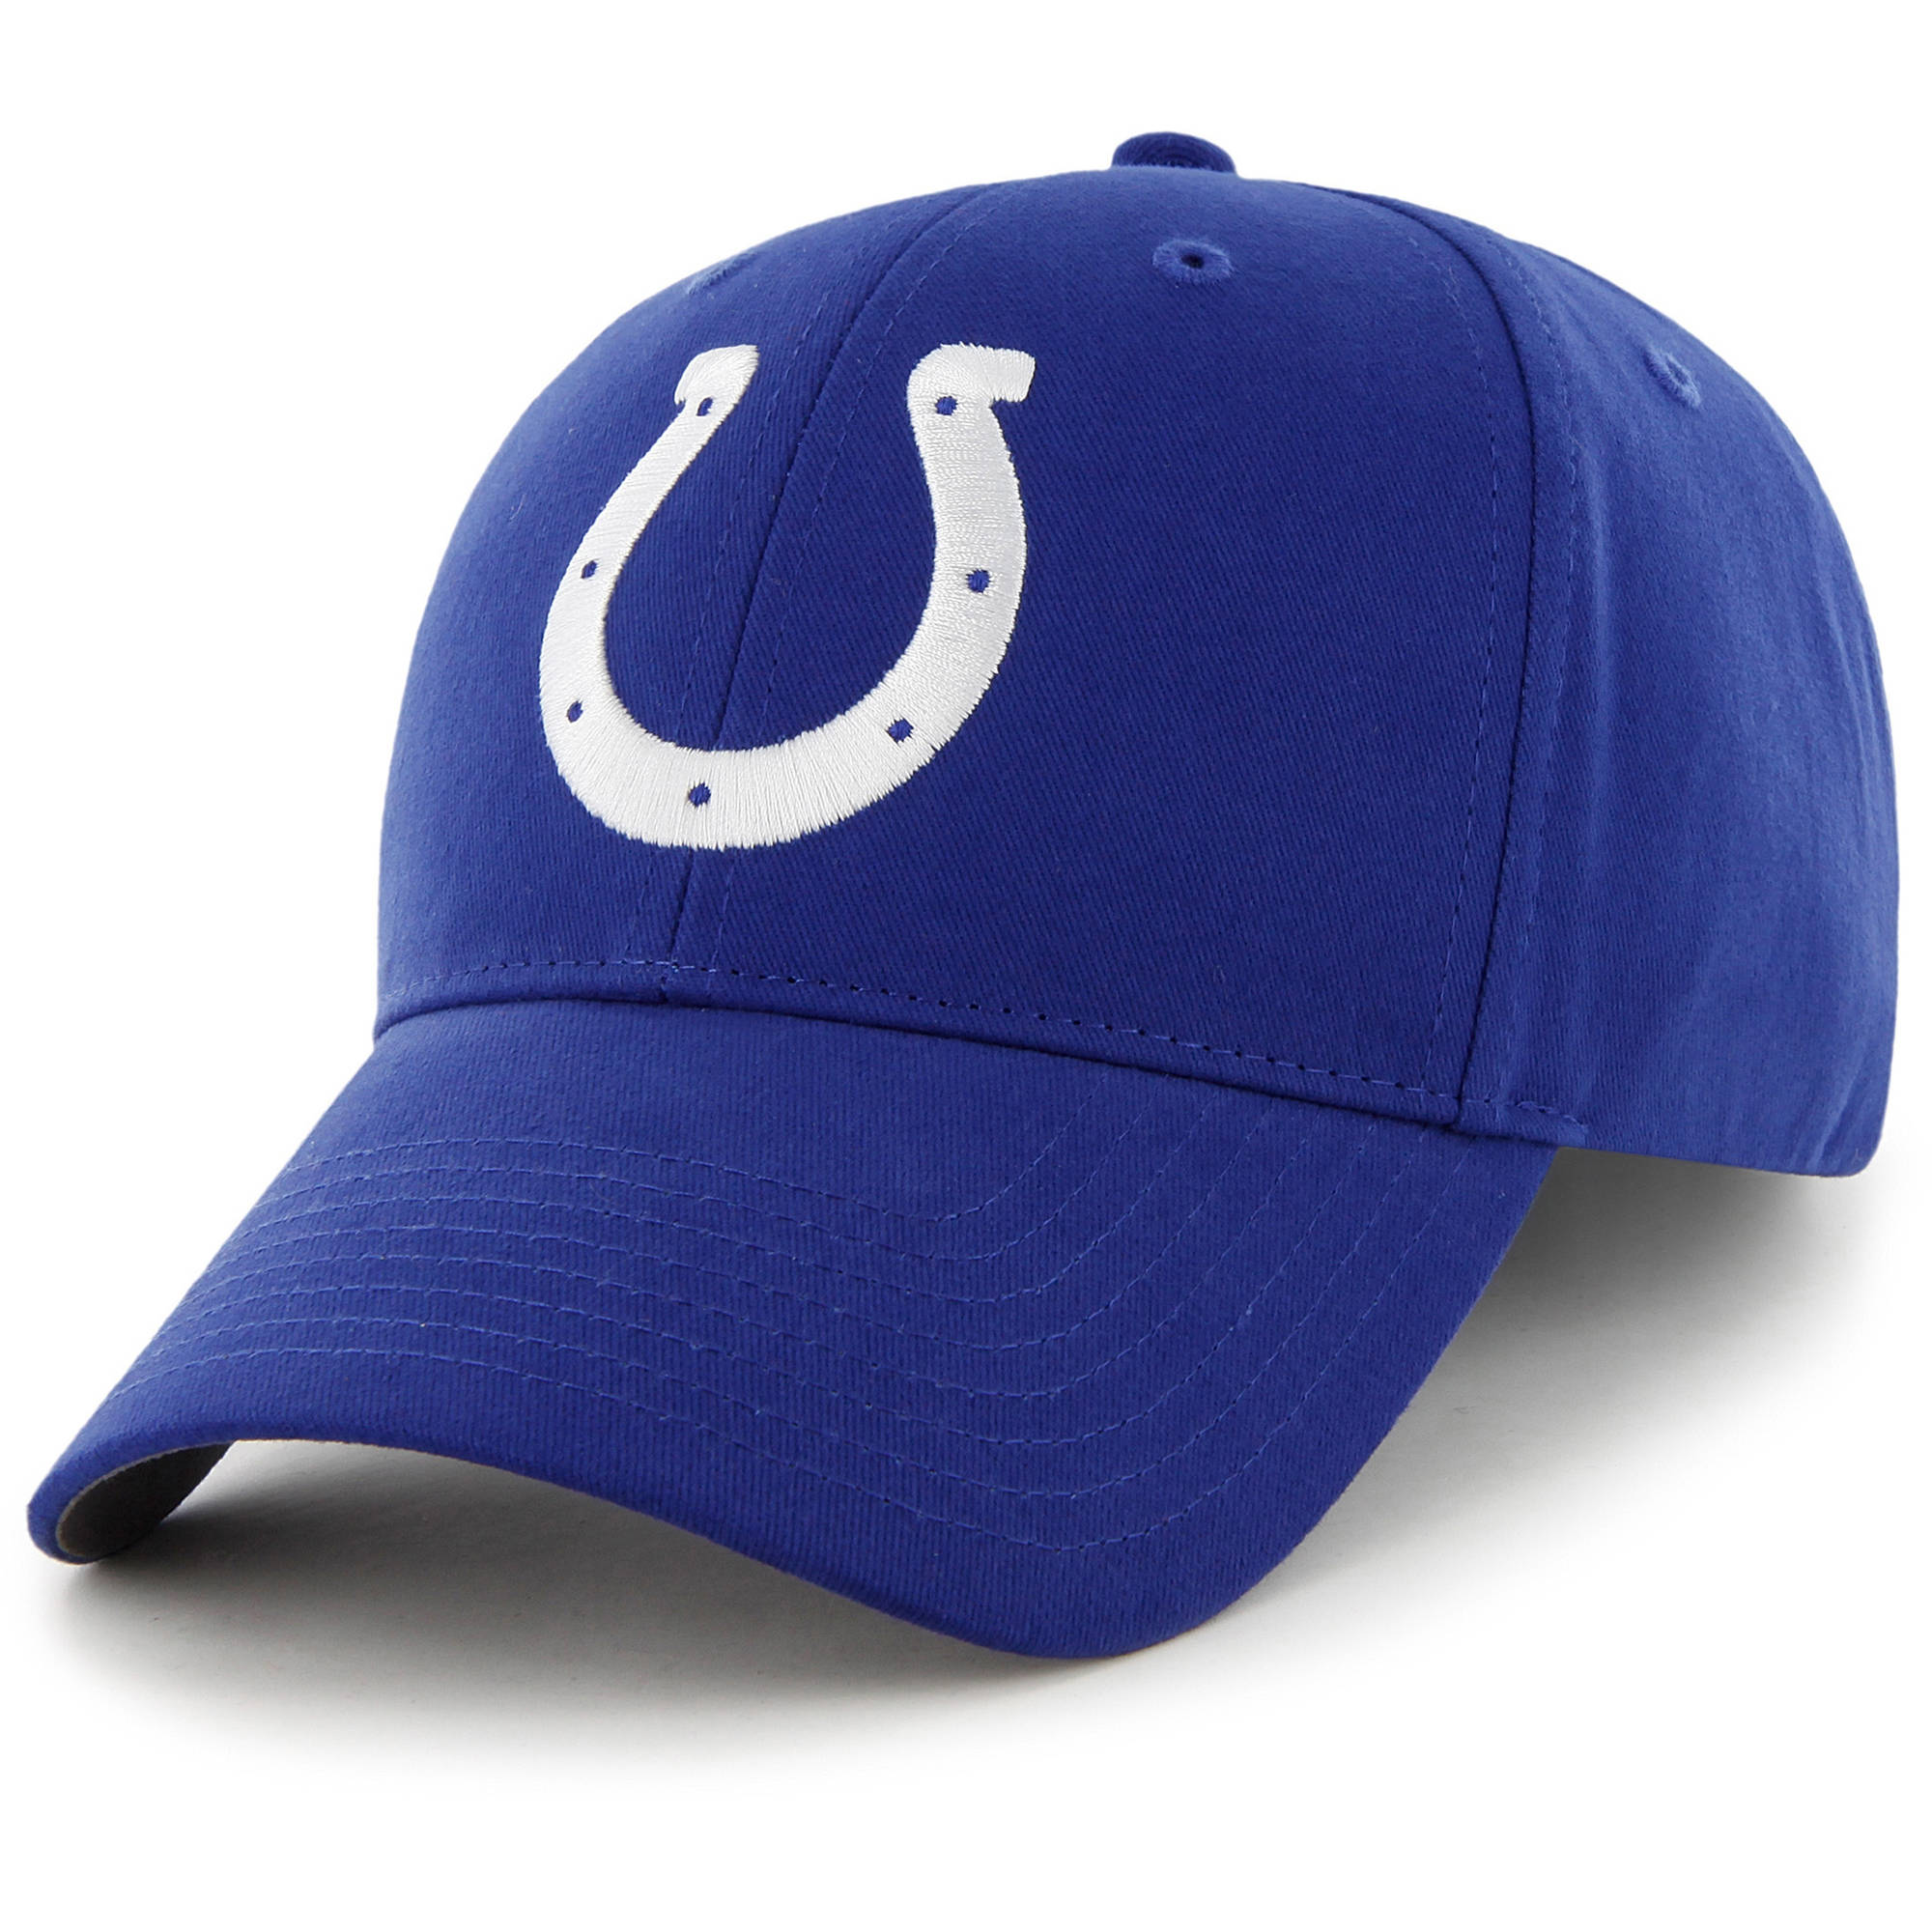 NFL Fan FavoriteBasic Cap, Indianapolis Colts